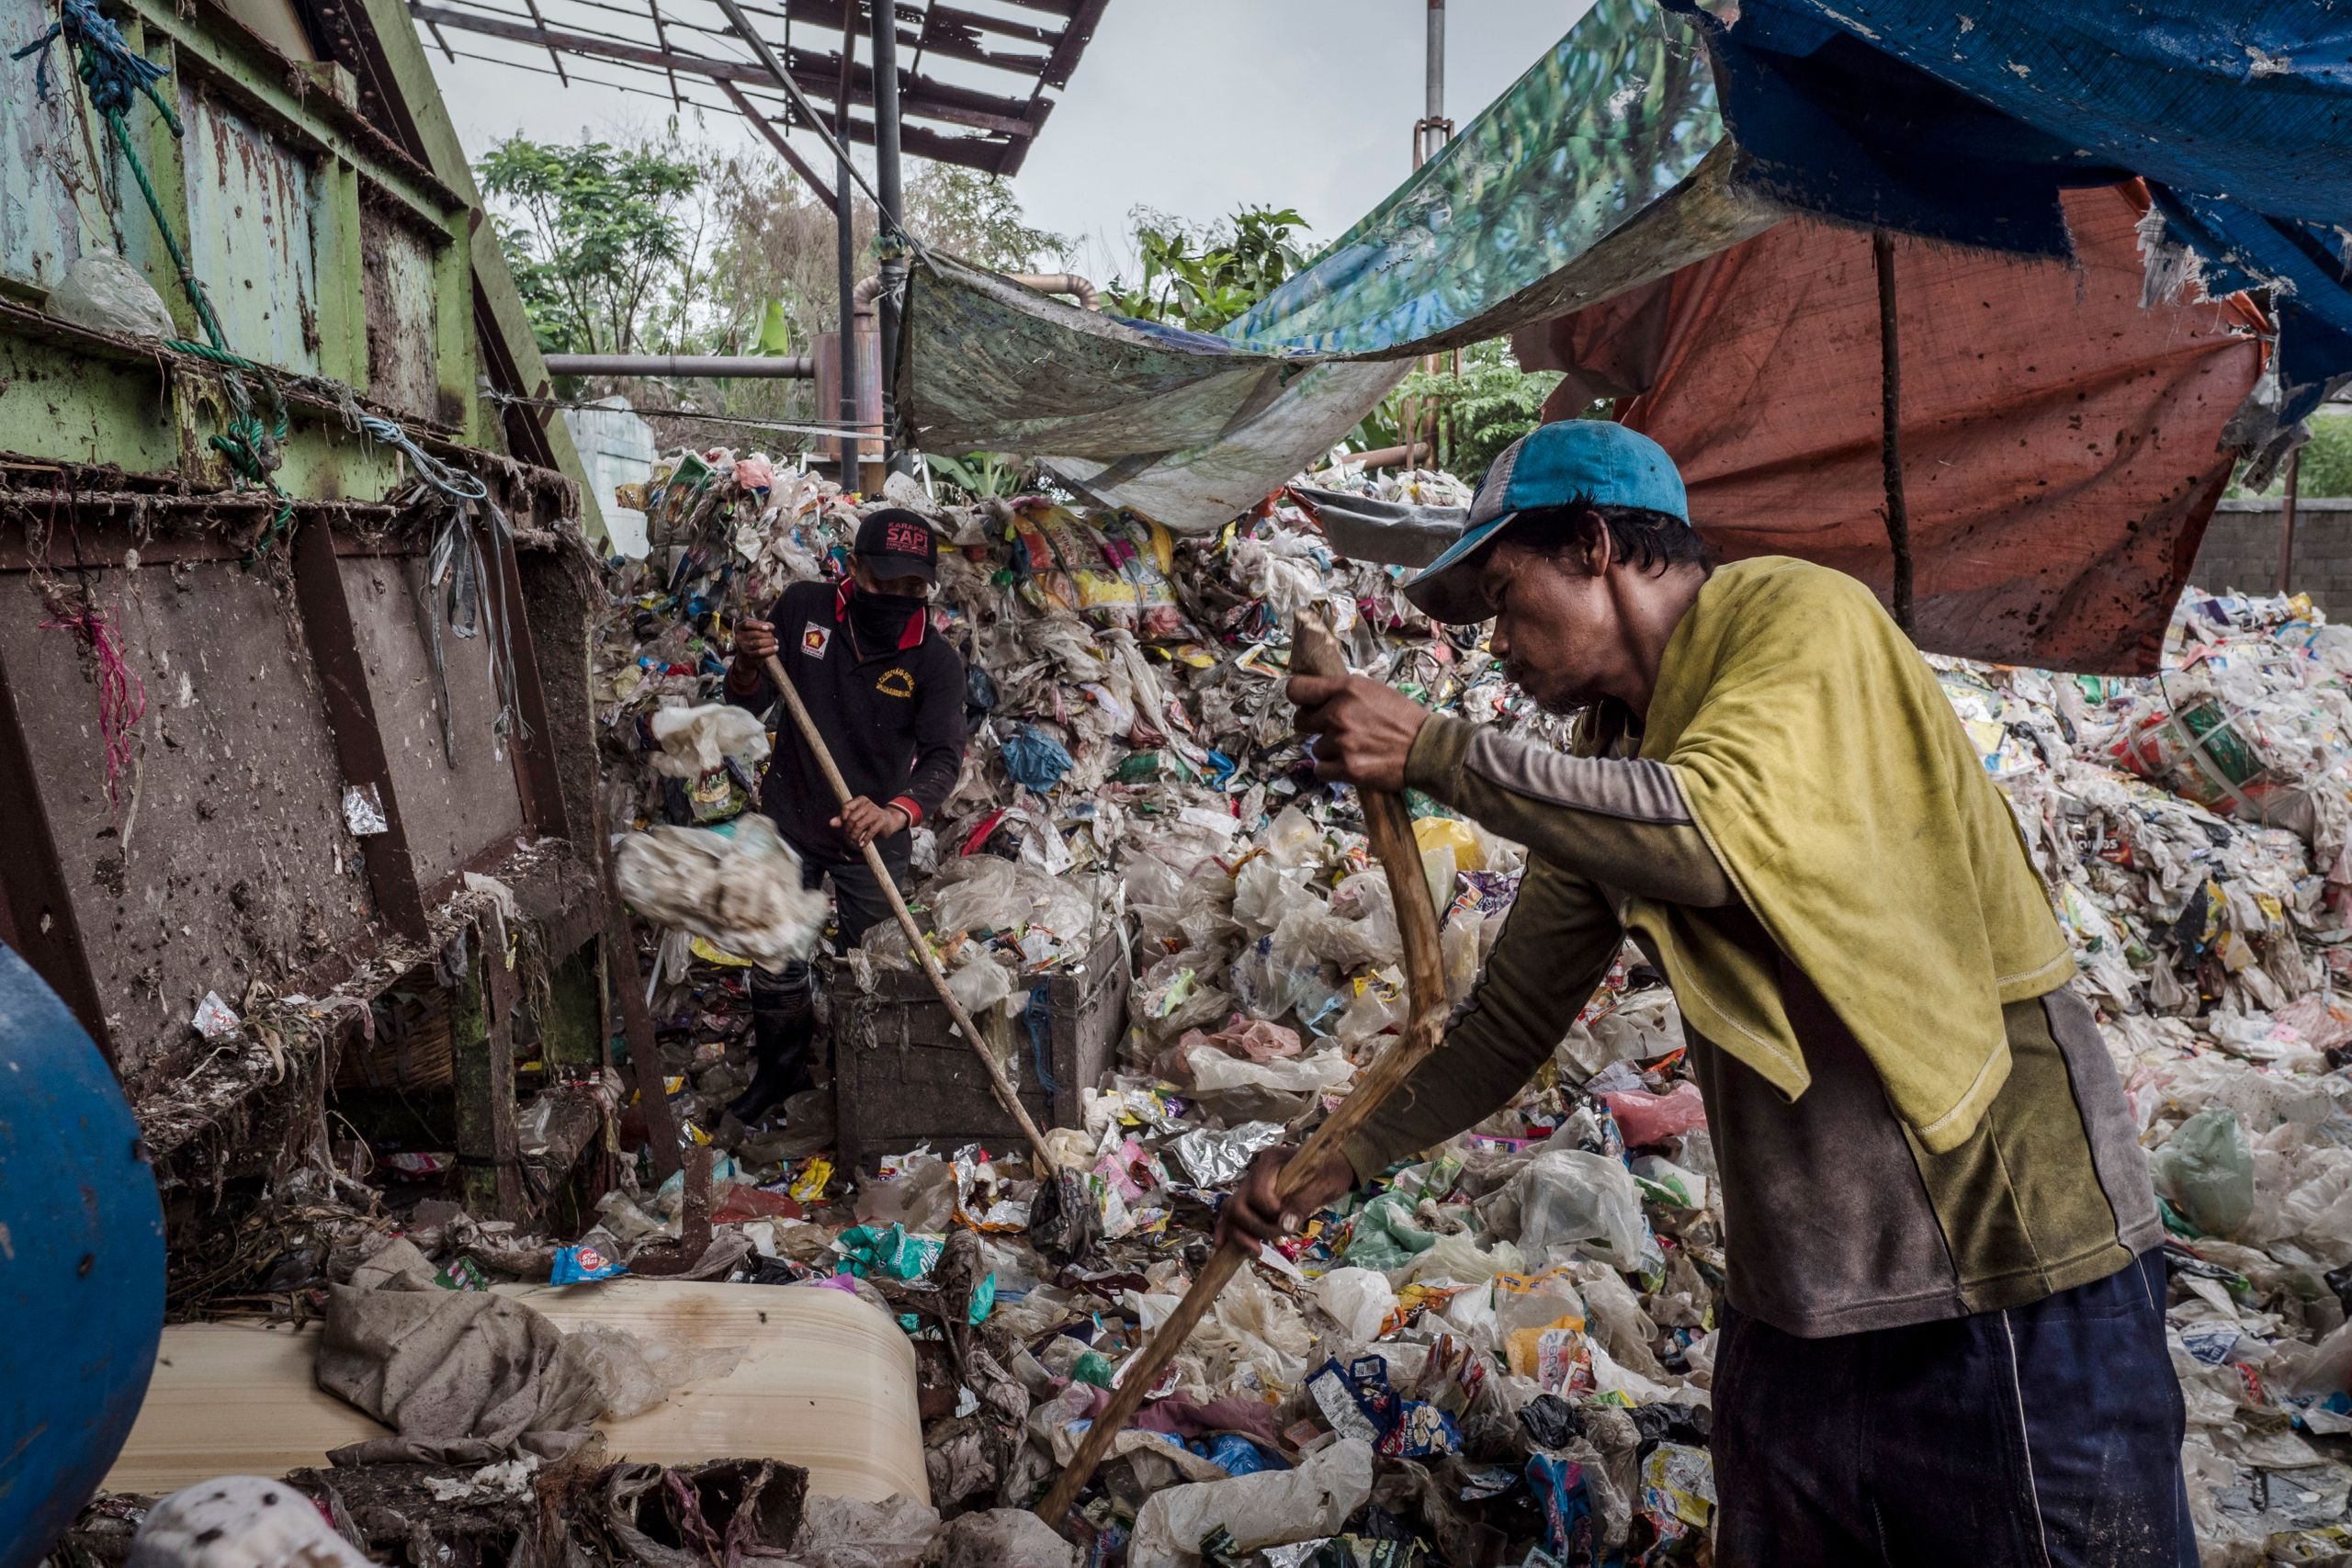 Workers sorting plastic to recycle at facility in Sidoarjo, an East Java city of 2.2 million.